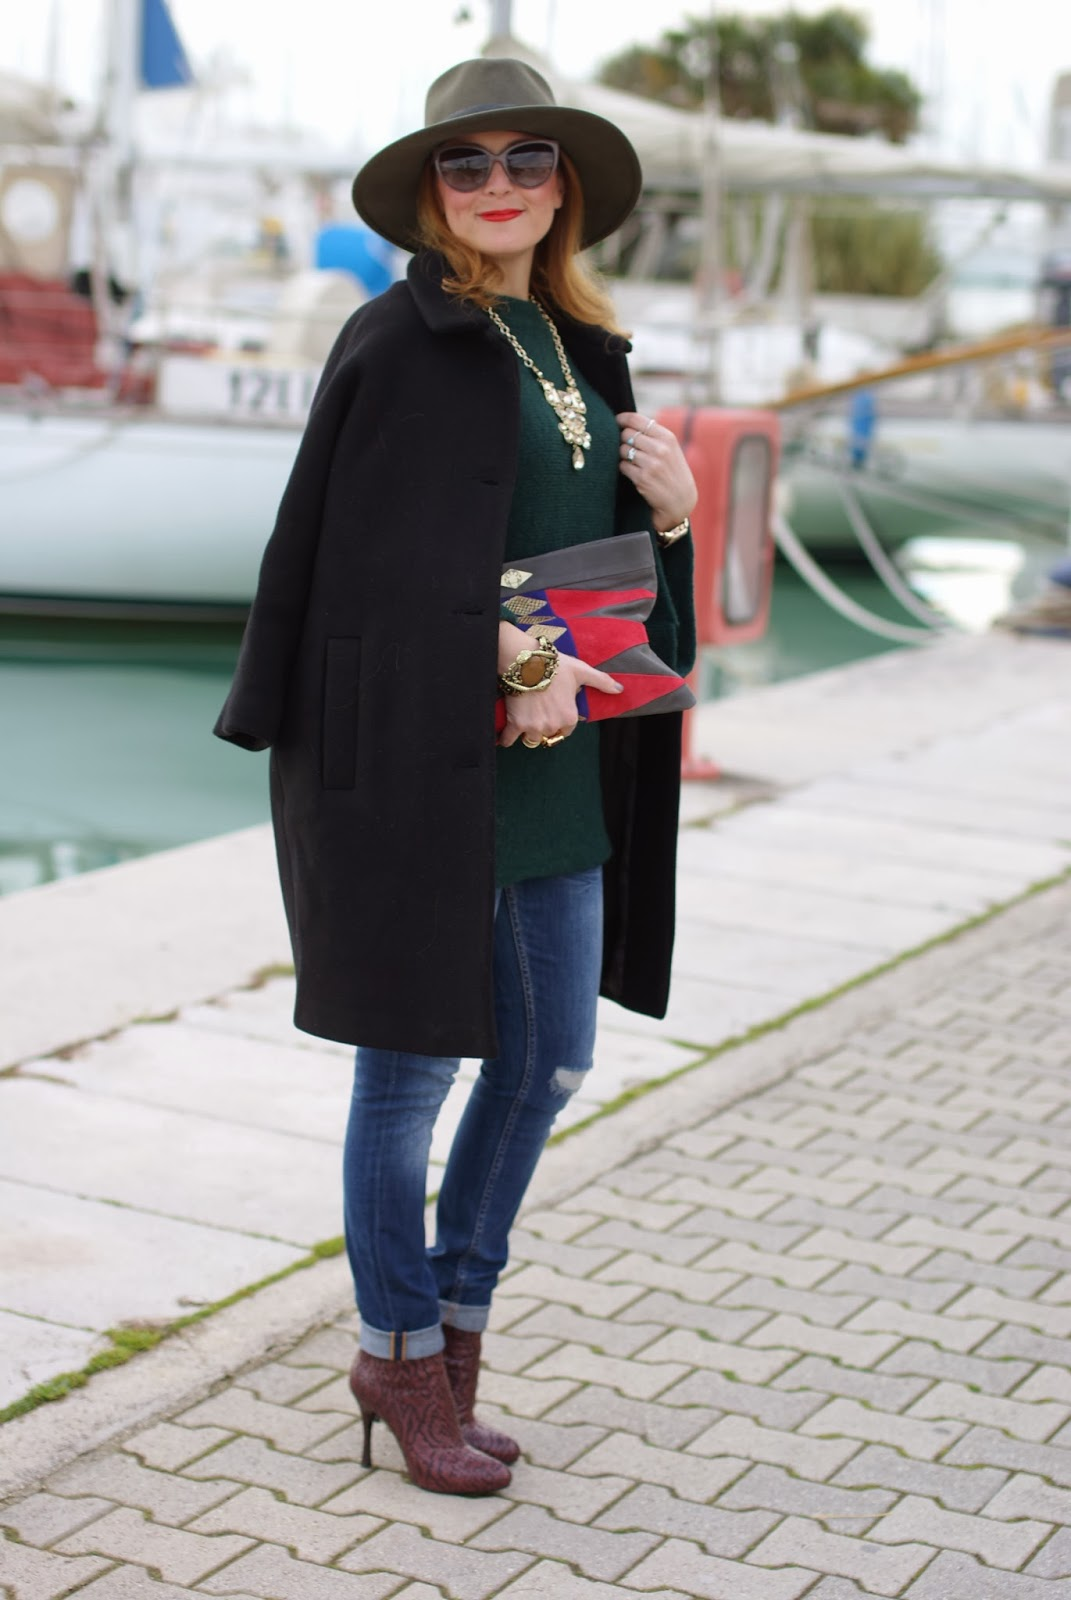 Ecua-Andino australian hat, ethnic chic look, Kiomi black coat, Mohekann Navajo clutch, Fashion and Cookies, fashion blogger